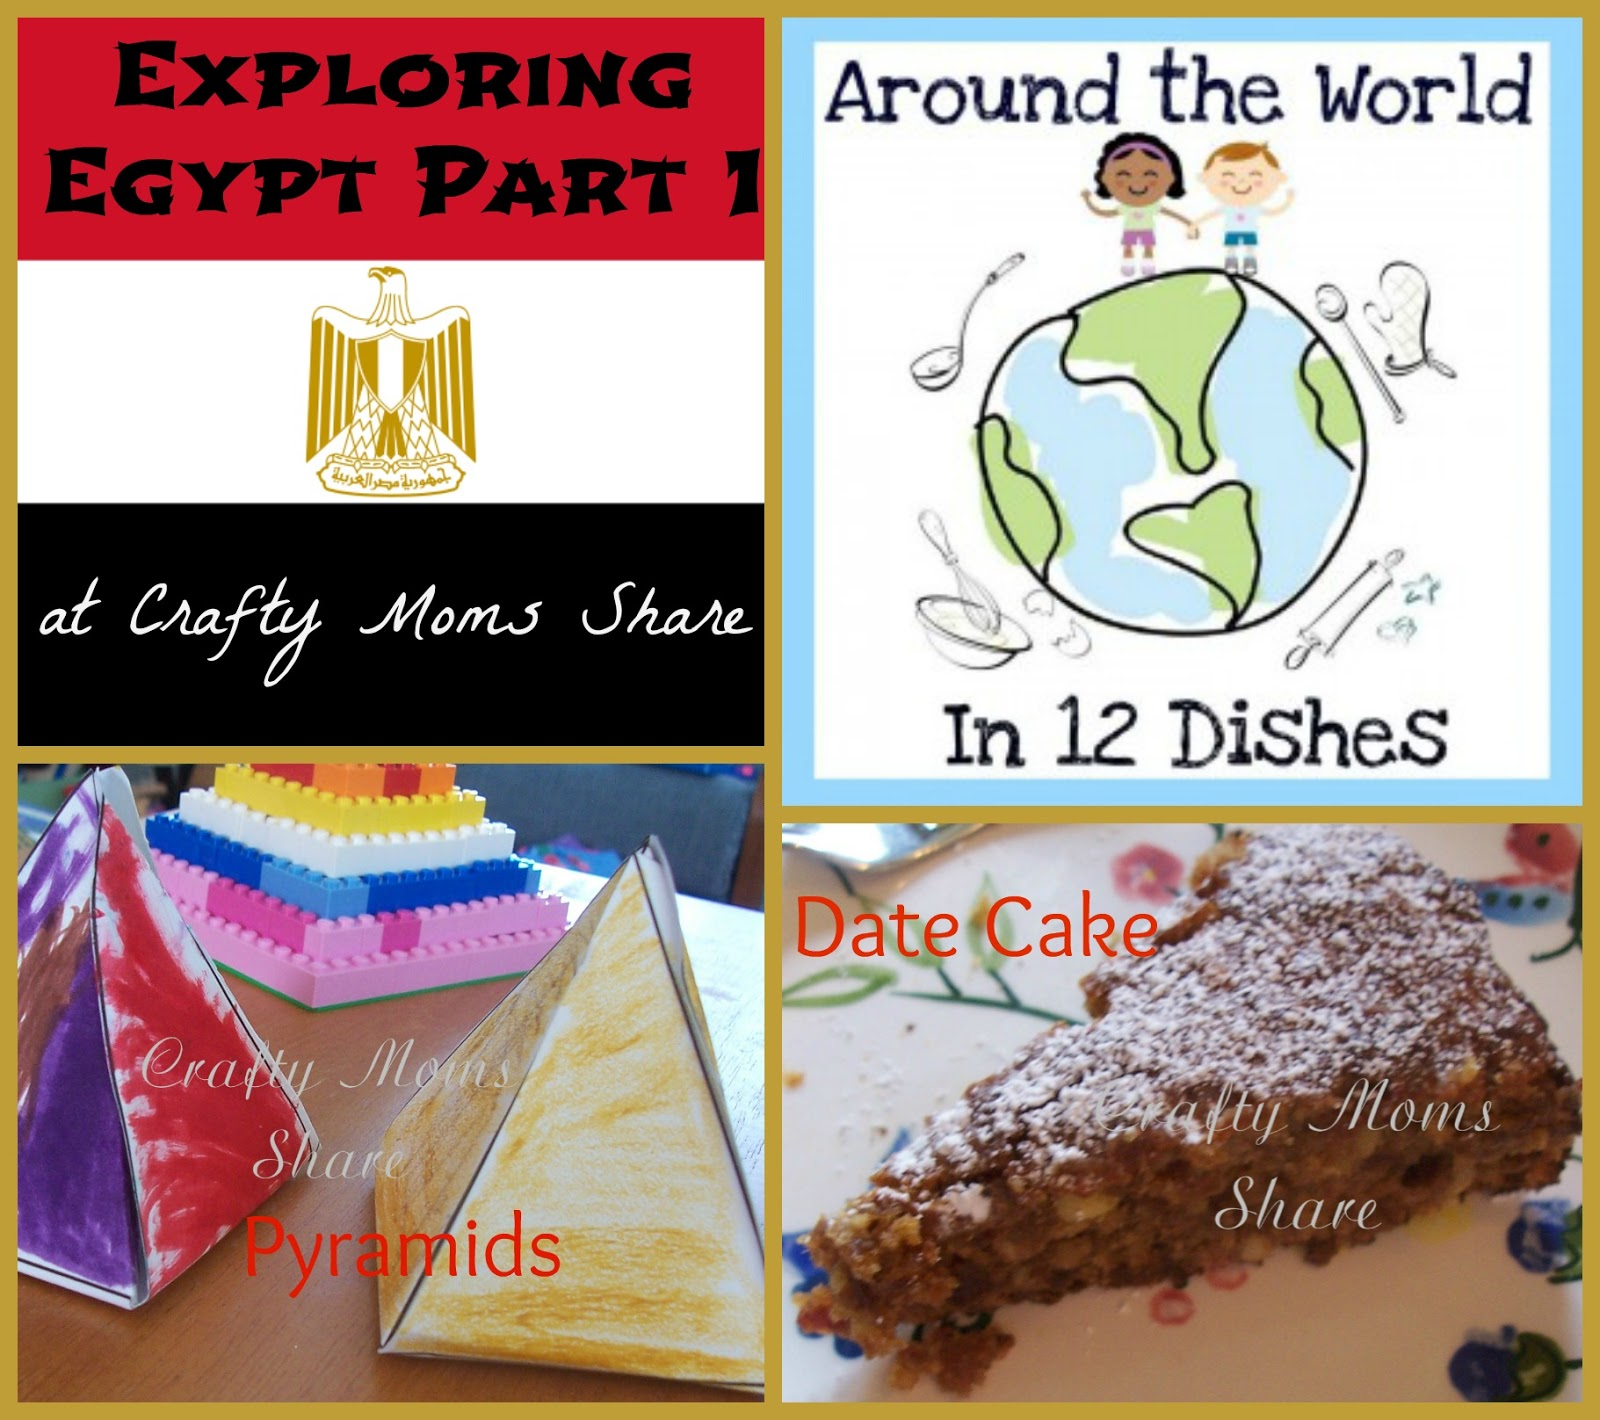 Crafty moms share around the world in 12 dishes egypt part 1 date cake around the world in 12 dishes egypt part 1 date cake forumfinder Images